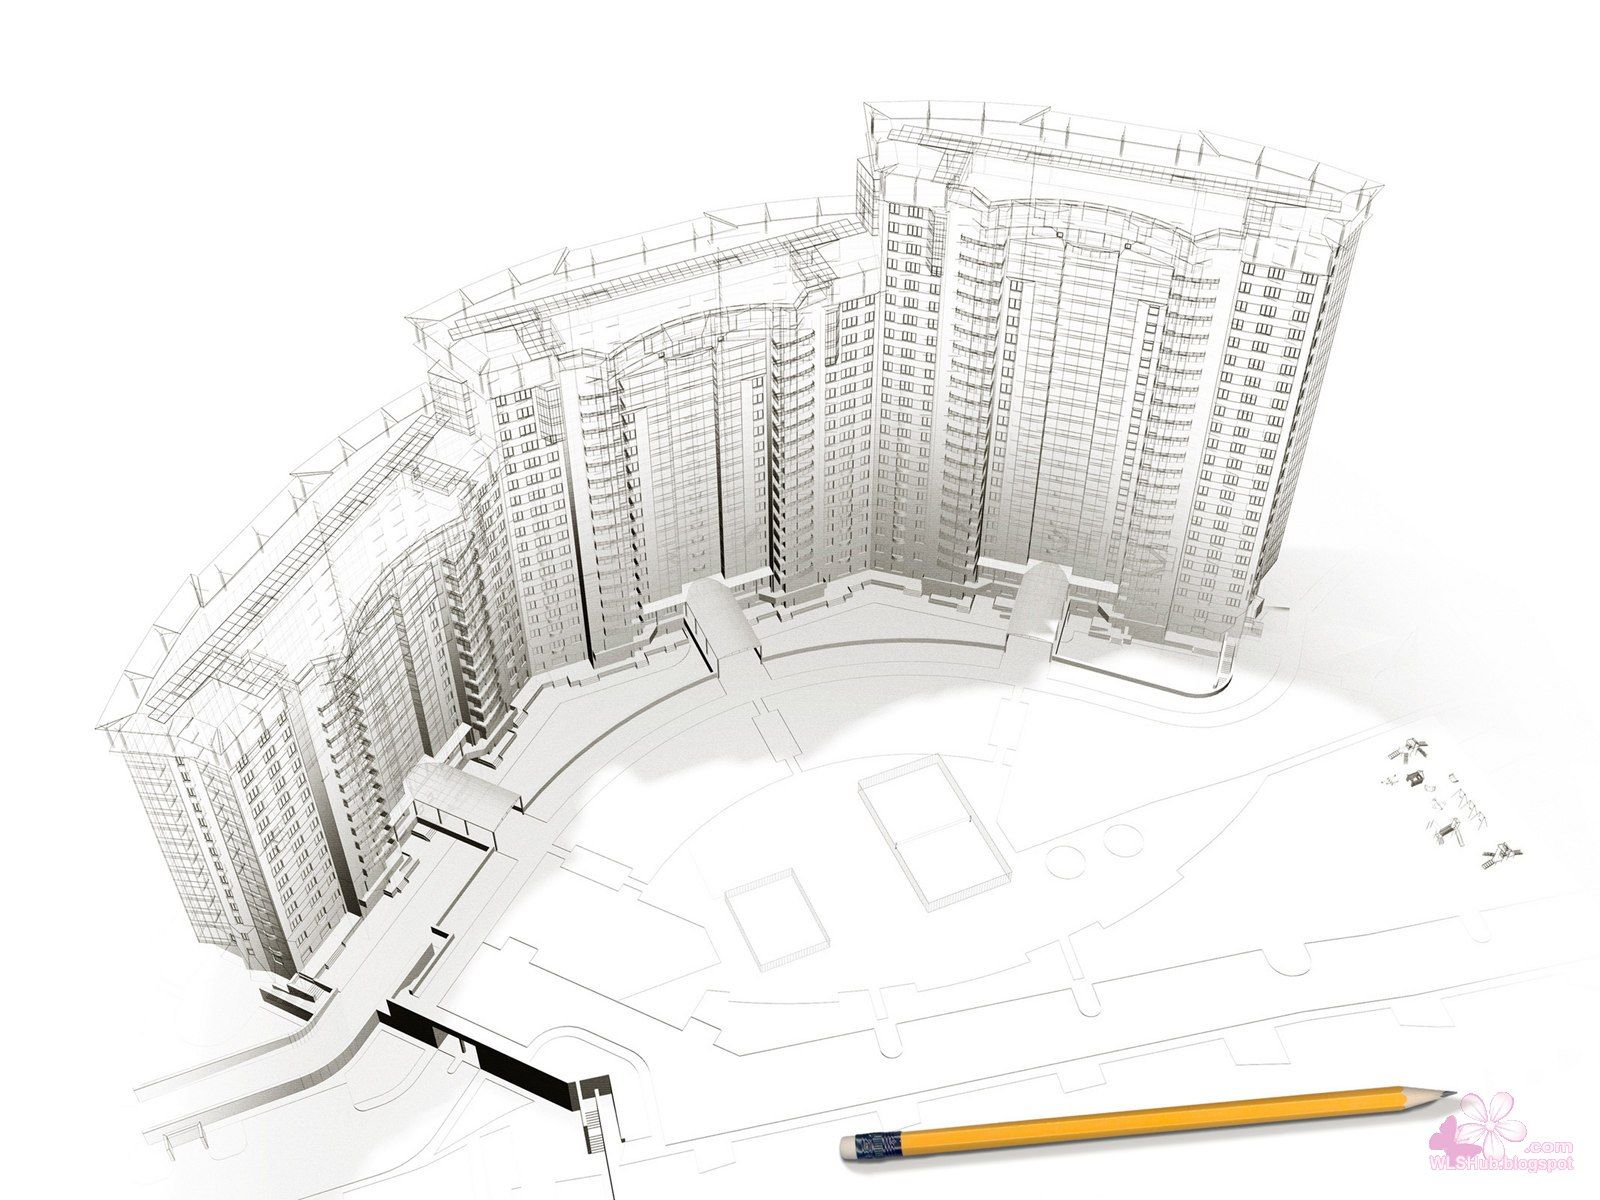 Architectural Design Drawing Design Inspiration 2 1600x1200